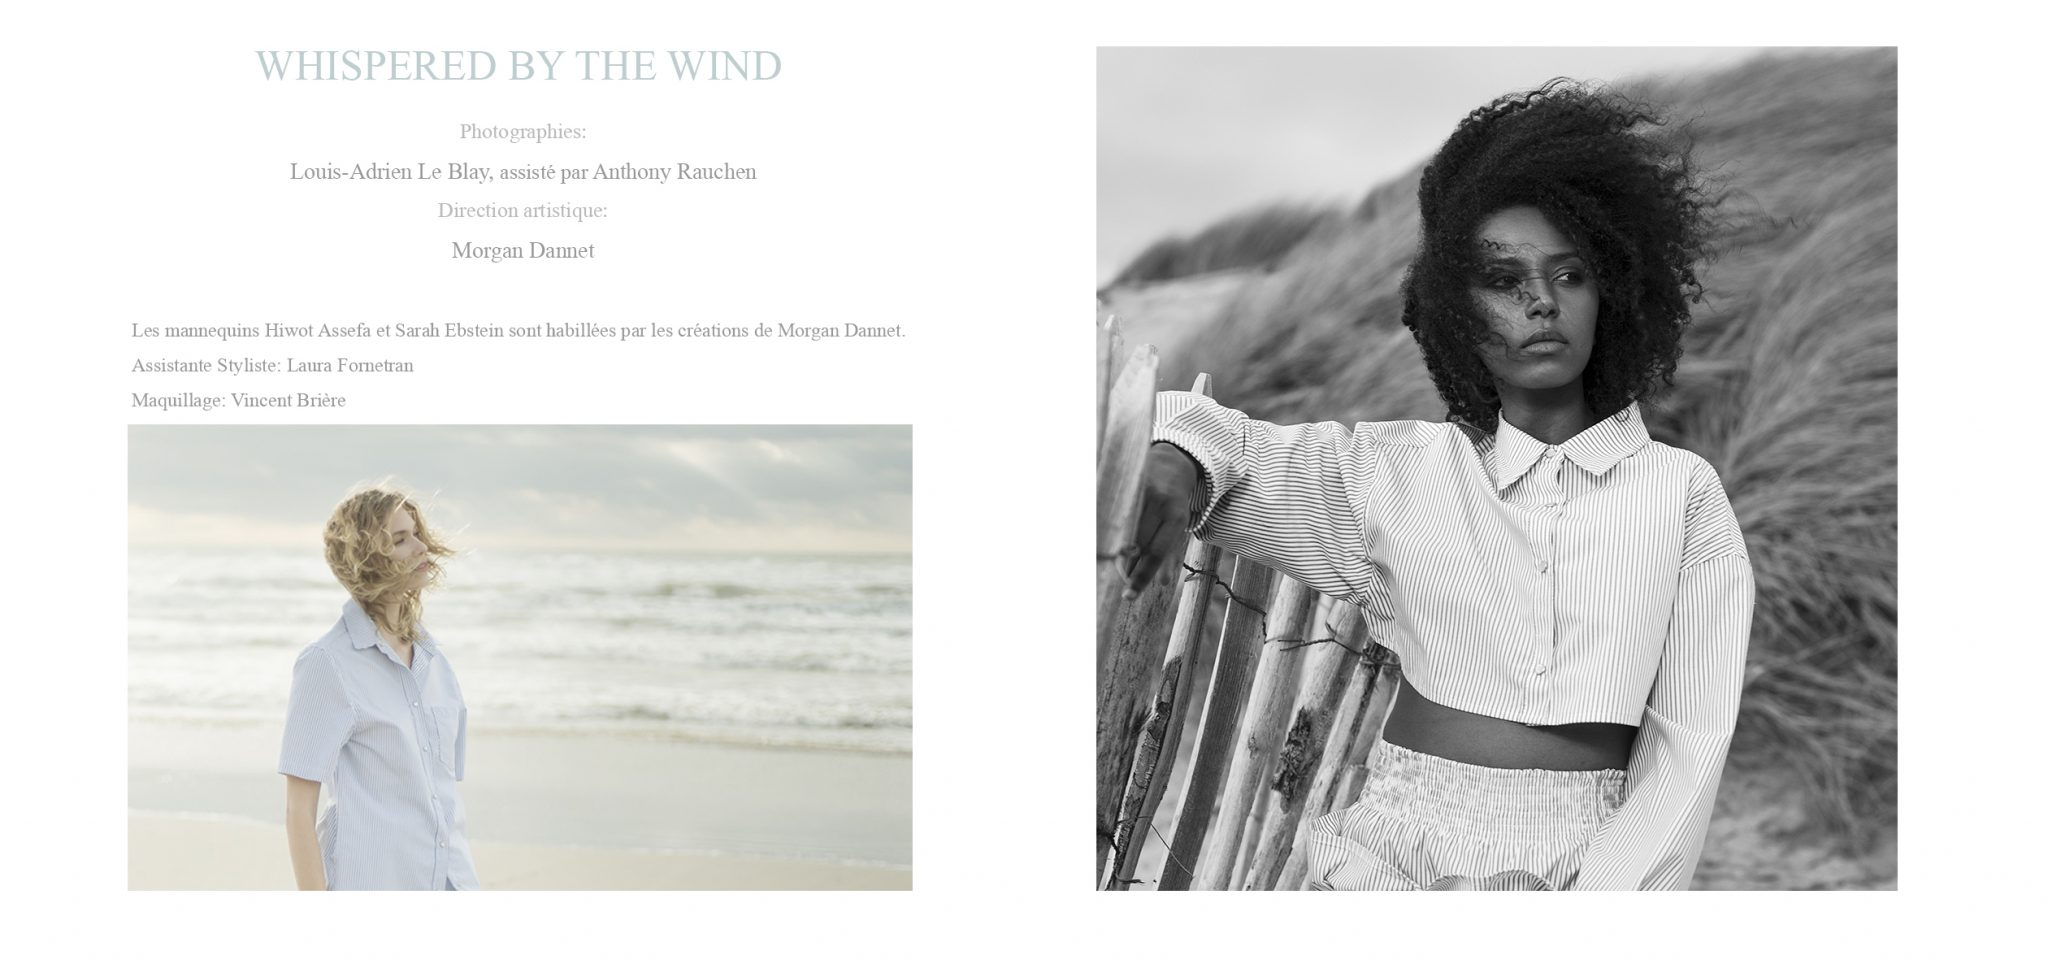 whispered by the wind louis adrien le blay fashion photography editorial webditorial story le dernier etage magazine webzine